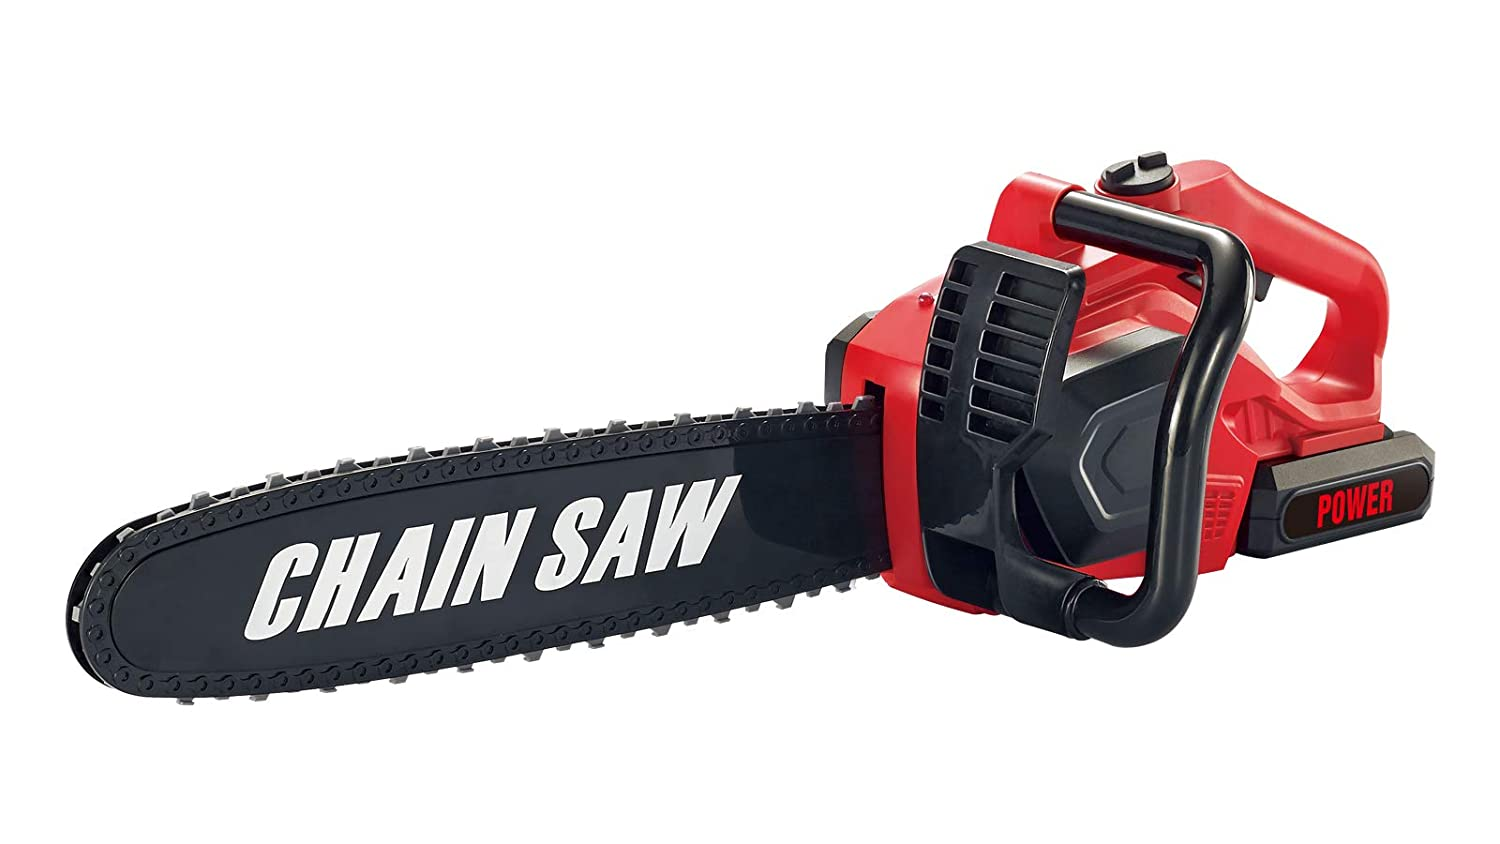 Kids Power Tool Toy Chainsaw Play Set, Boys Pretend Play Outdoor Lawn Toy Tools Chainsaw Set for Toddlers LTD.